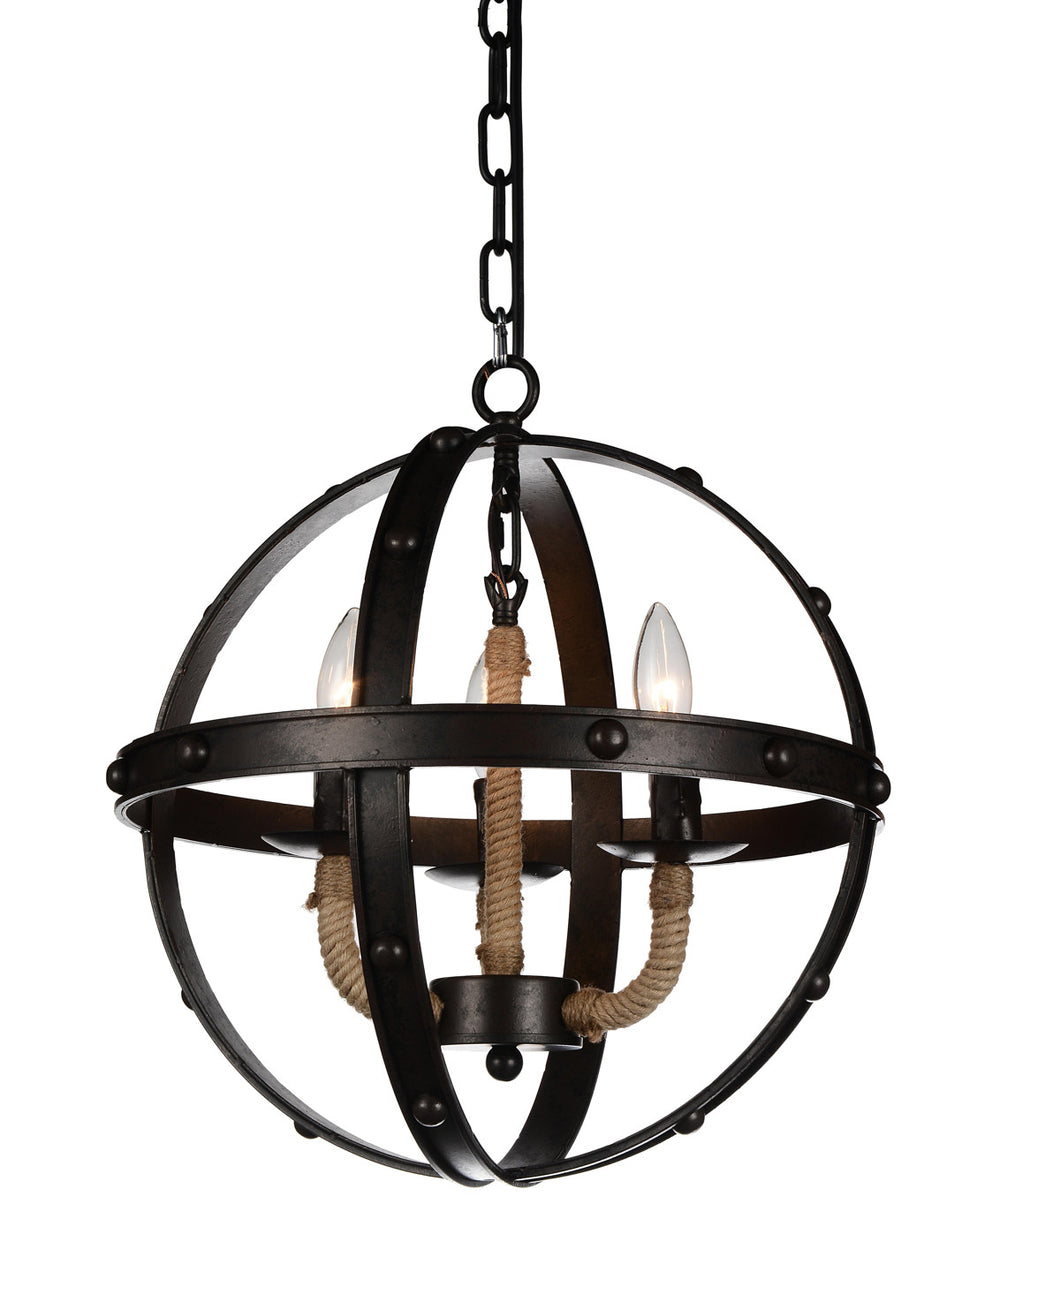 3 Light Up Chandelier with Rust finish